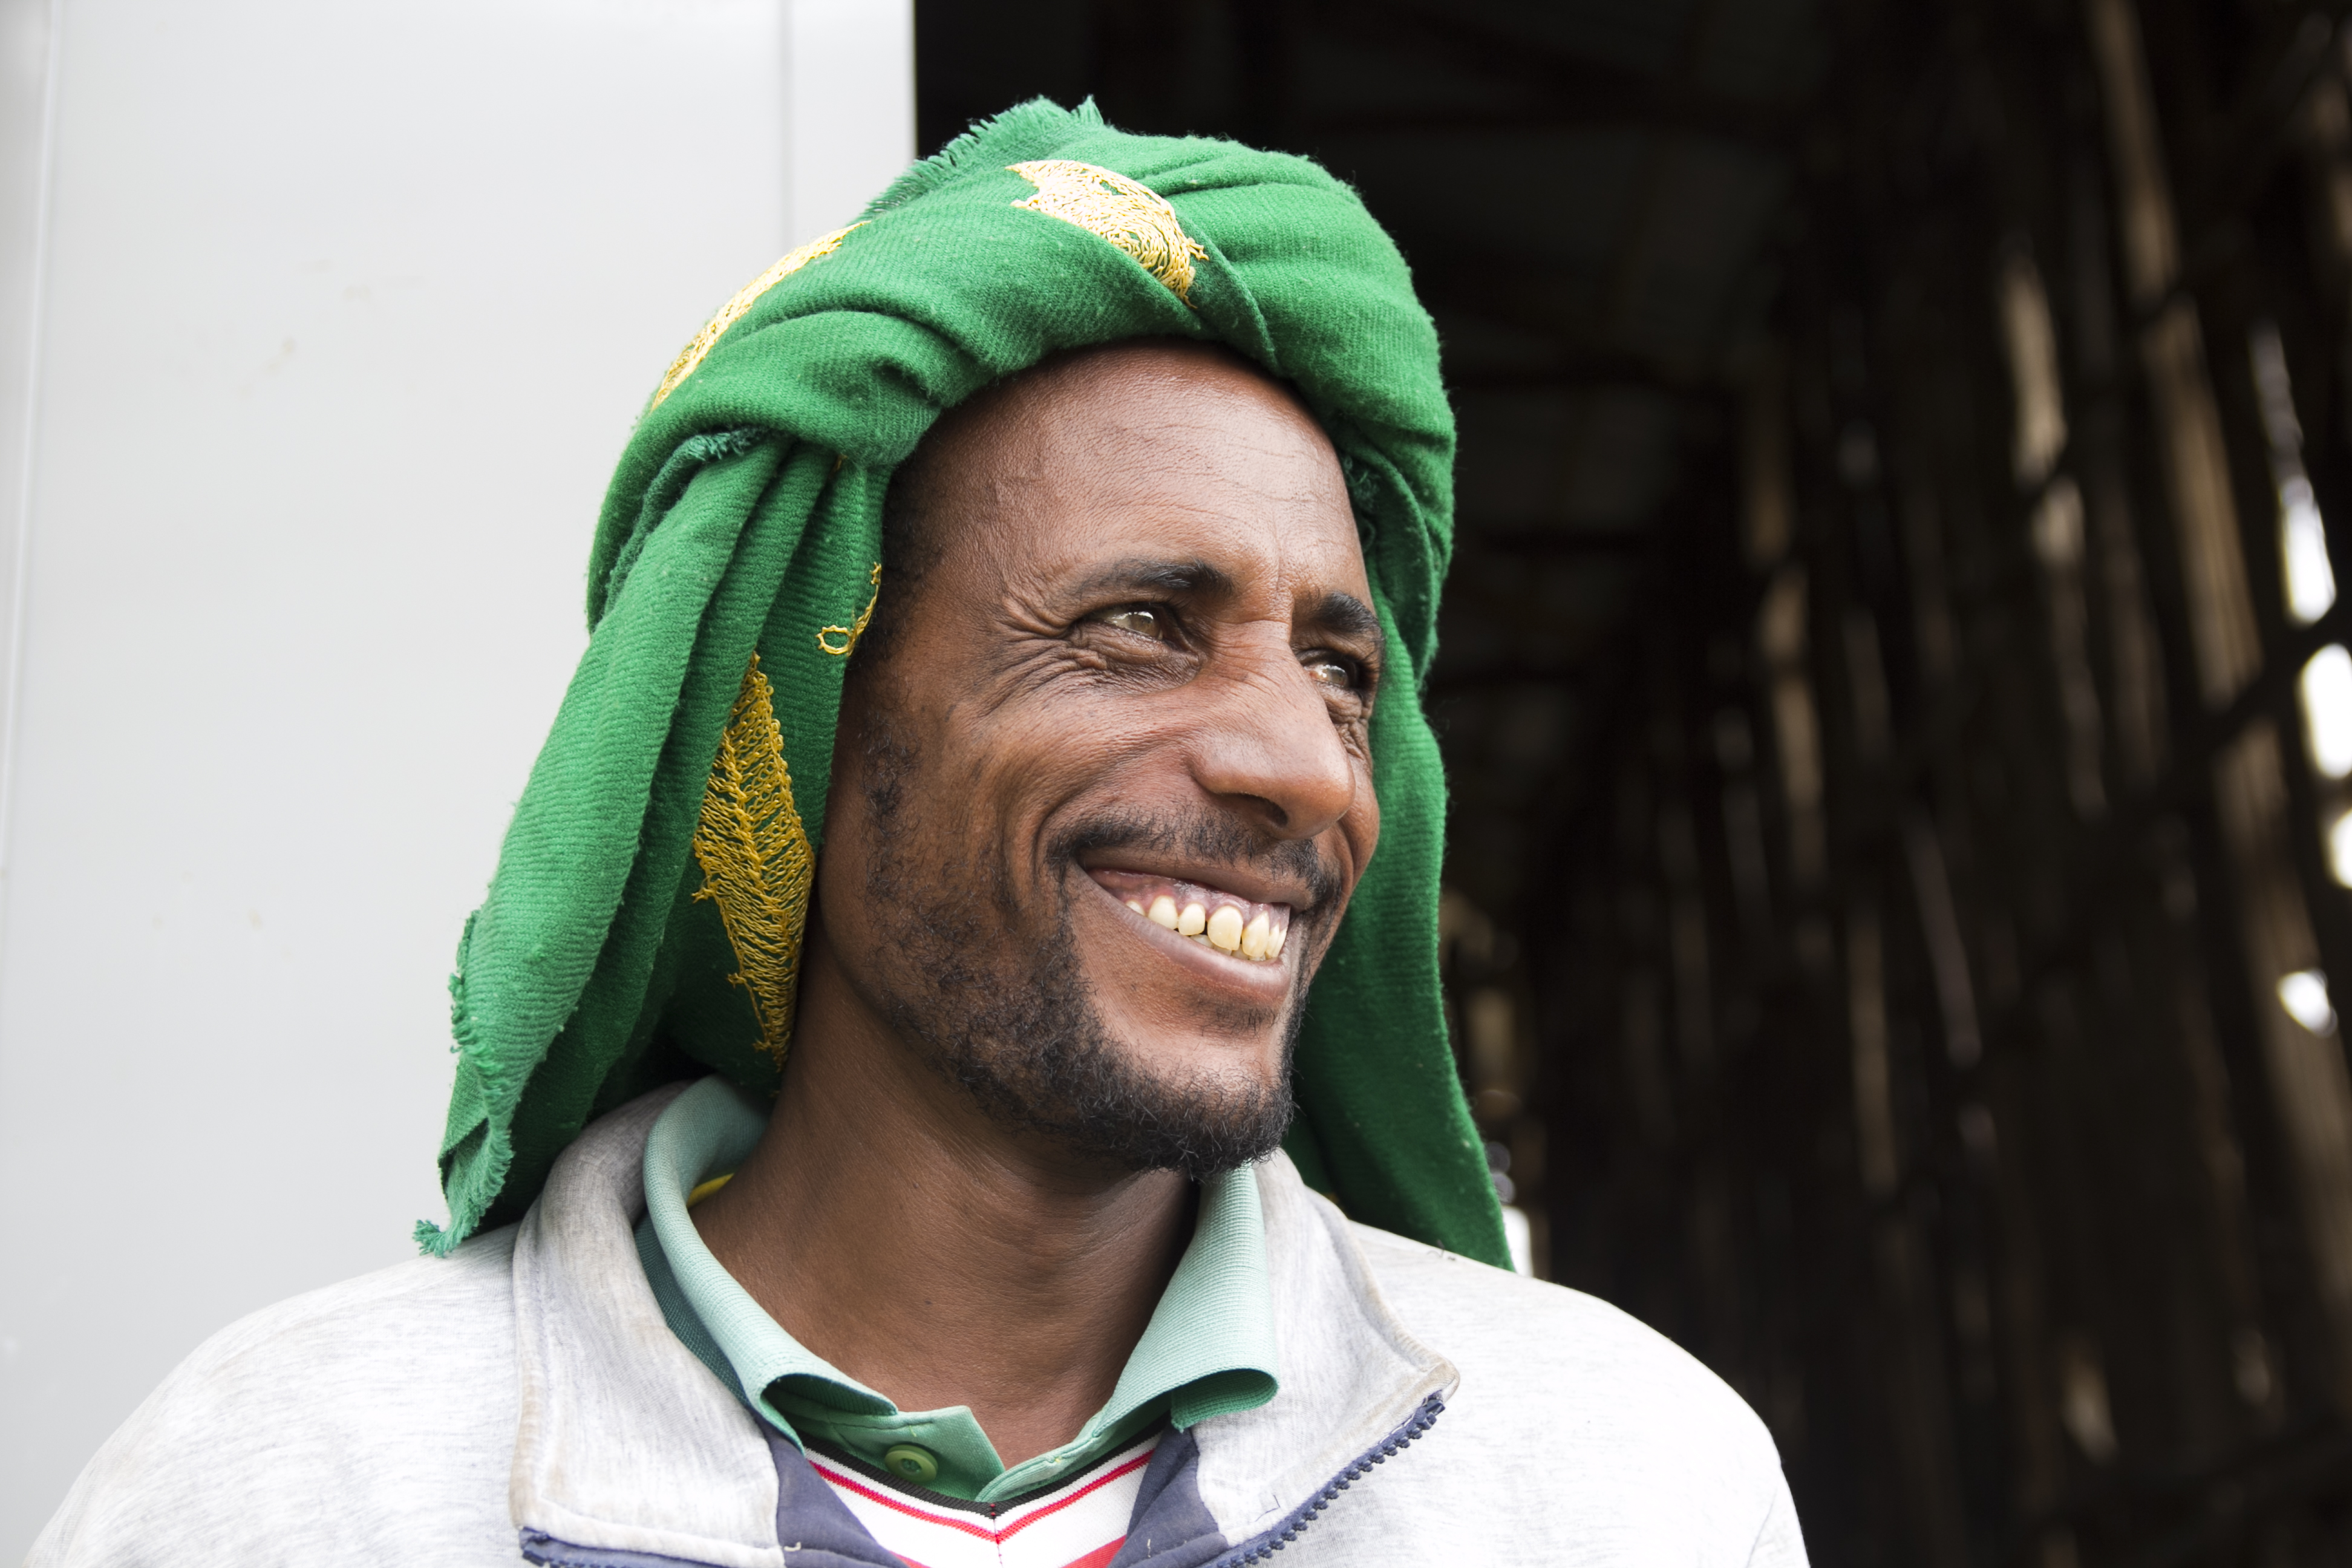 Man with Ethiopian headgear